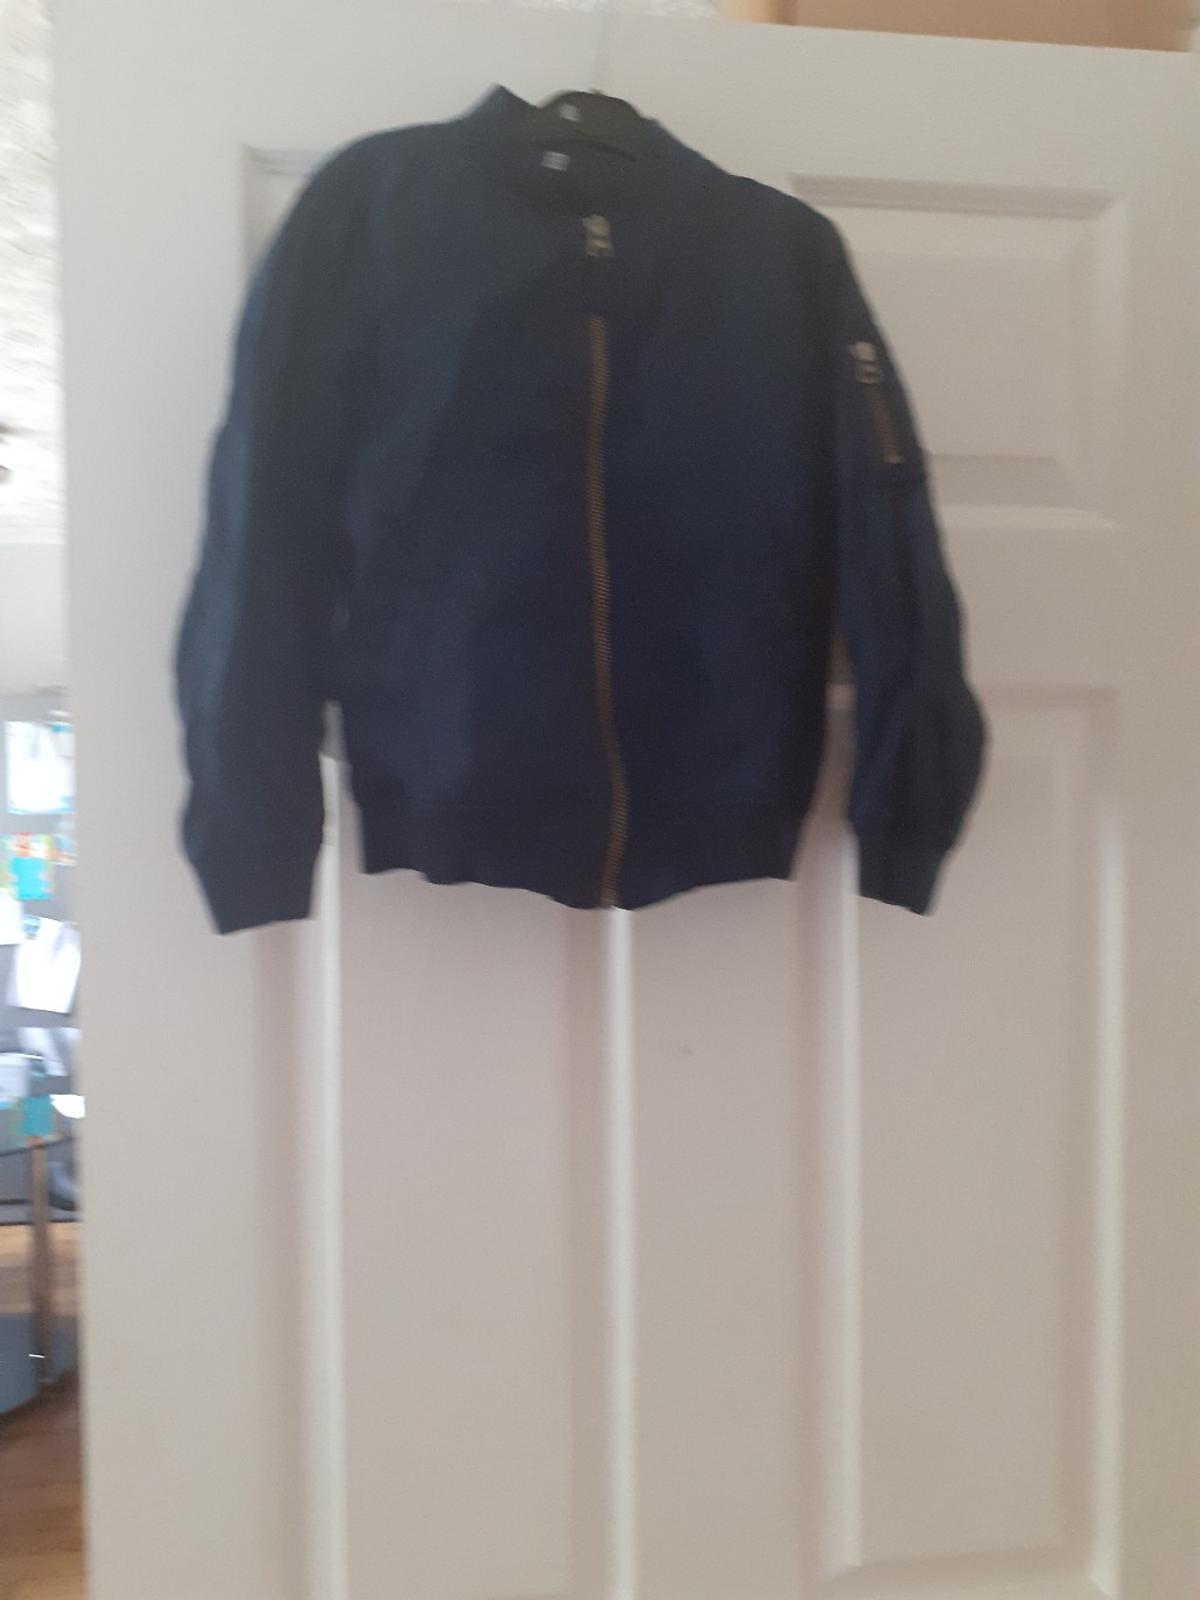 Blue bomber style jacket, aged 4-5 years. In good condition